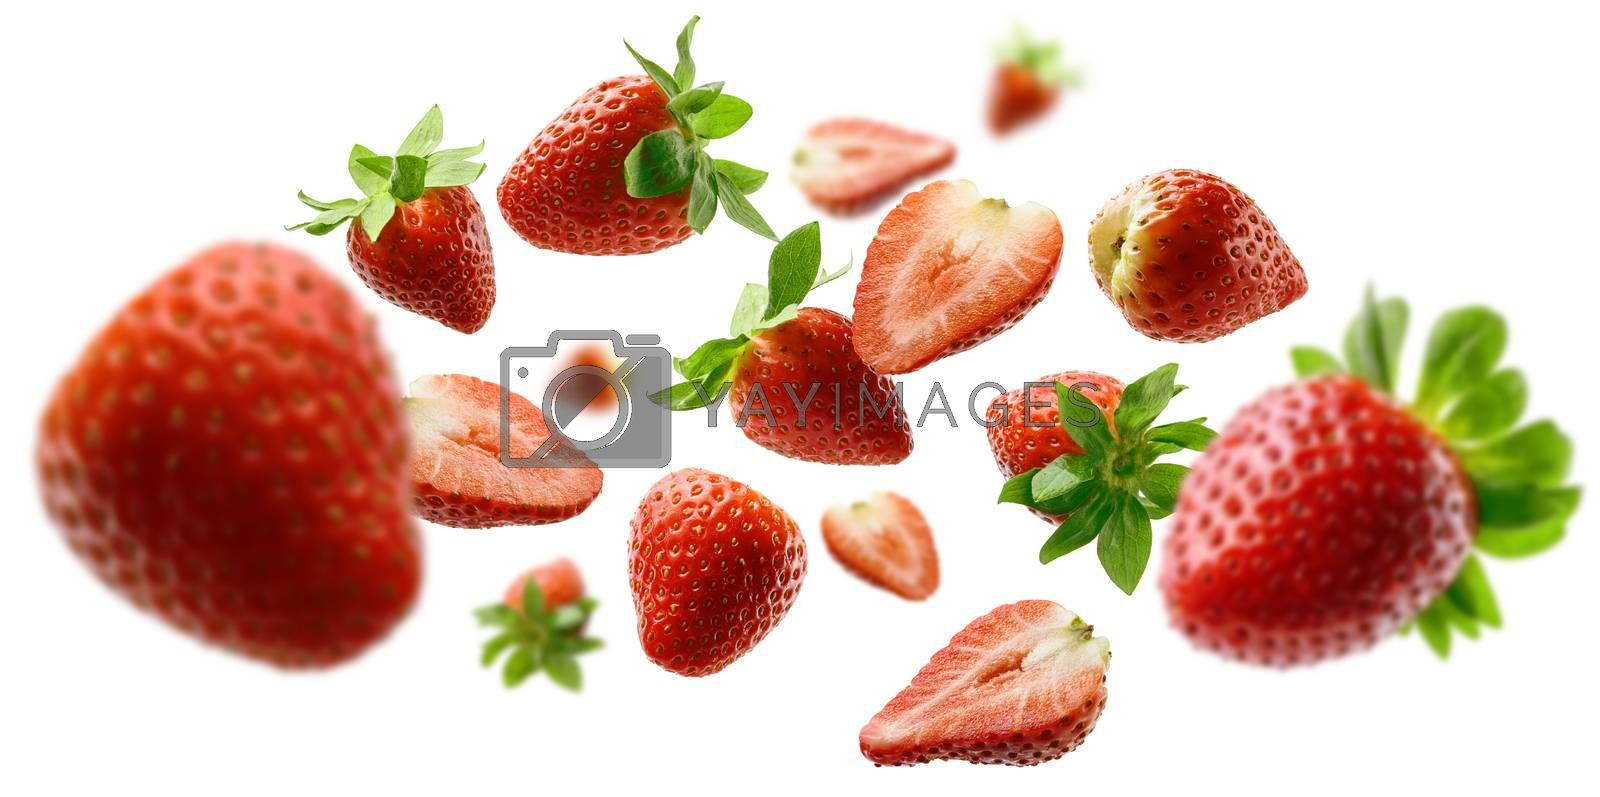 Strawberry berry levitating on a white background.